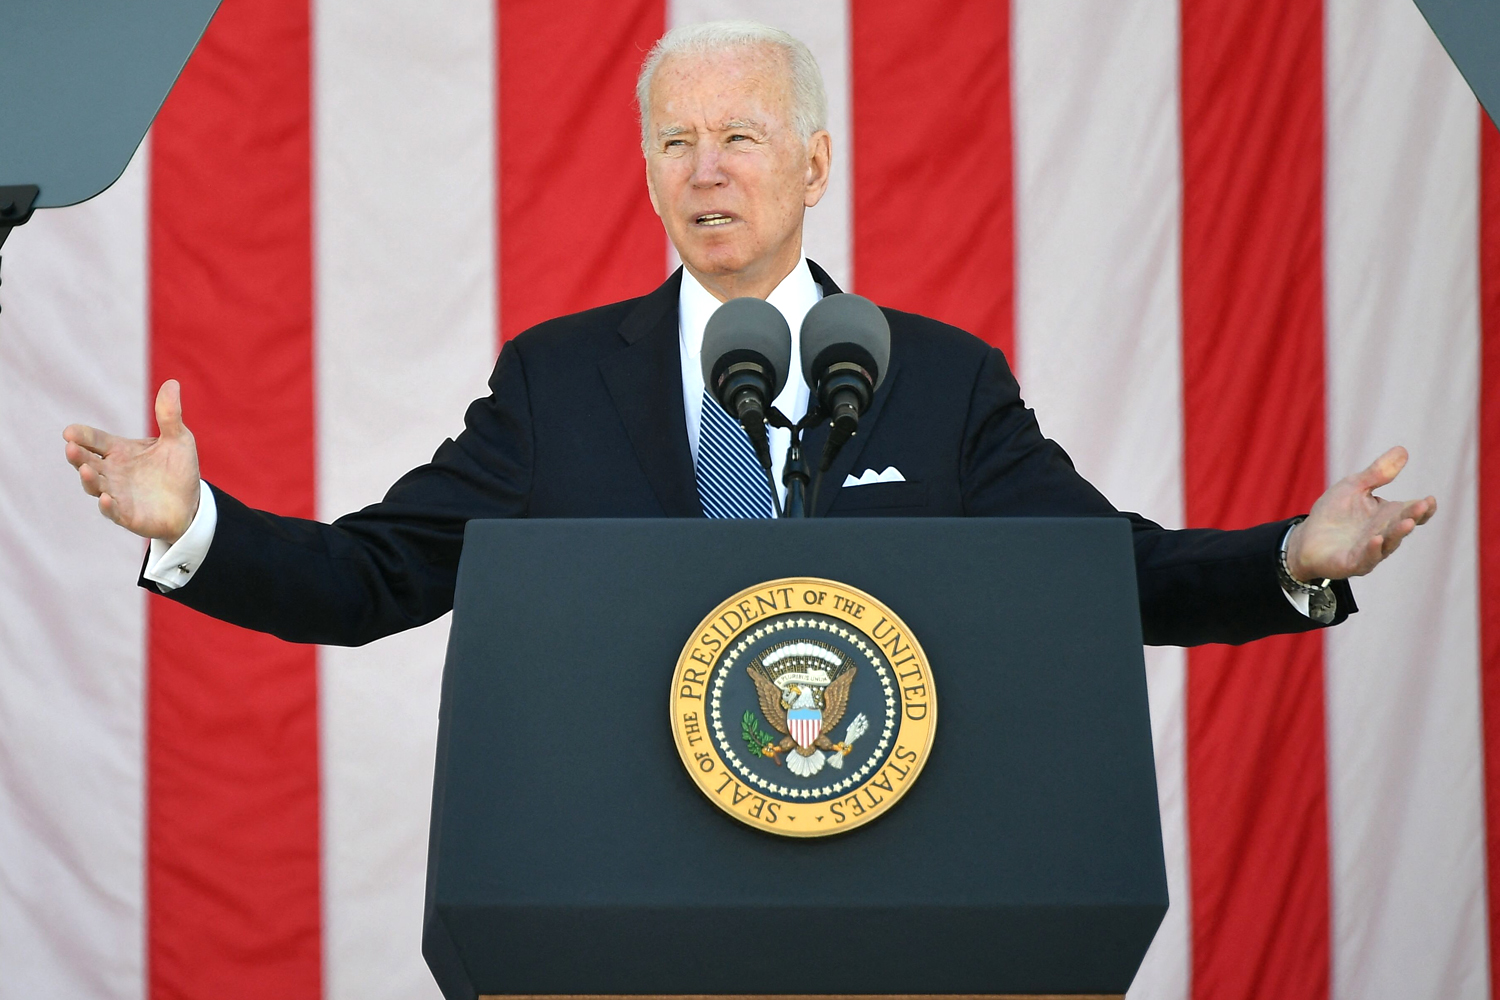 US President Joe Biden delivers an address at the 153rd National Memorial Day Observance